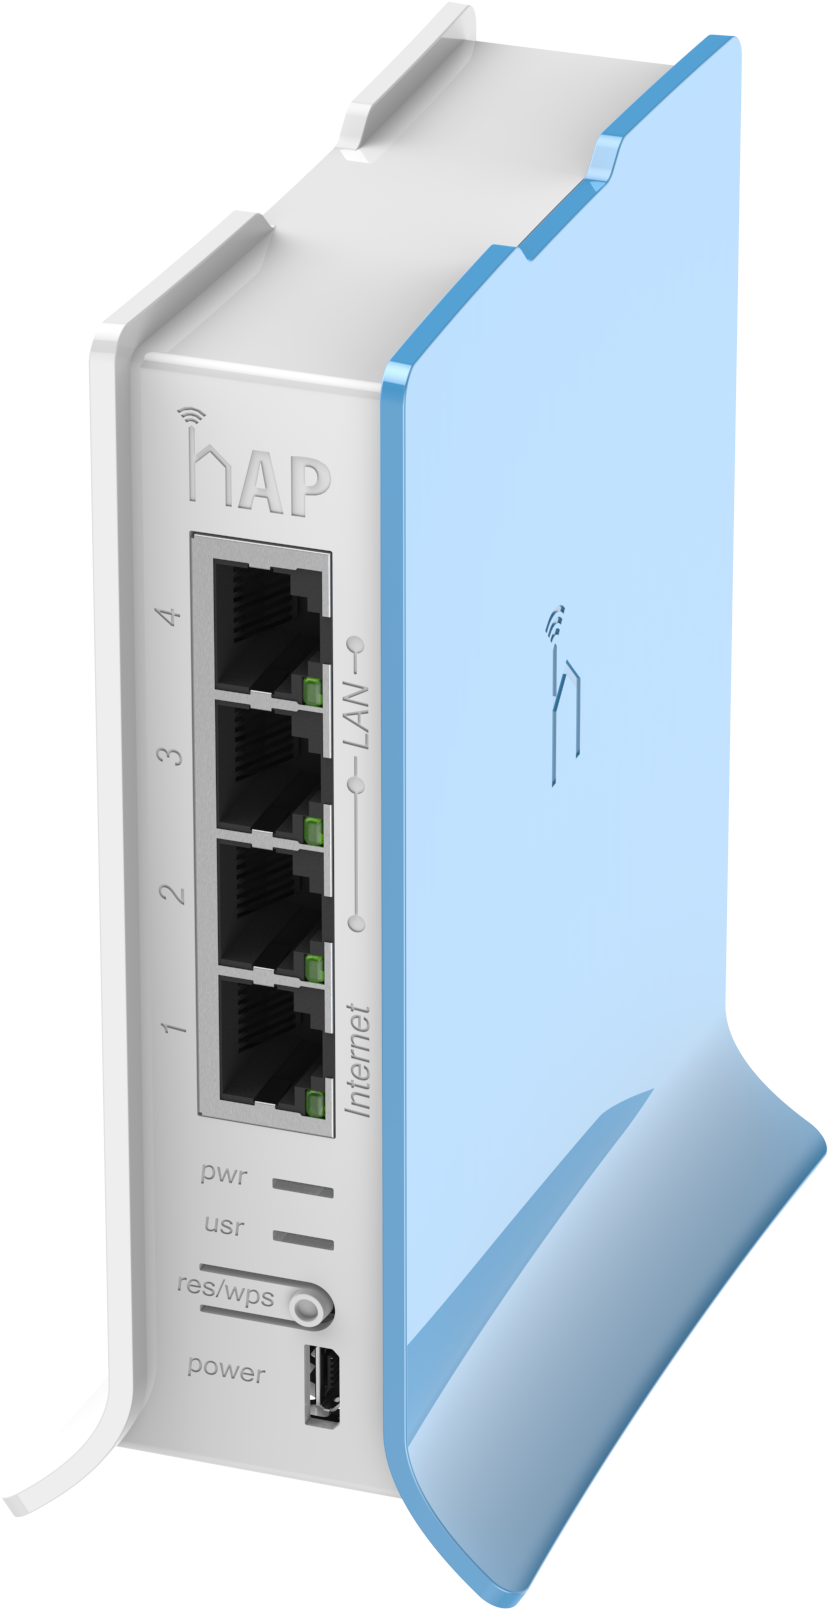 MikroTik Routers and Wireless - Products  hAP lite TC f9f167aabfab8